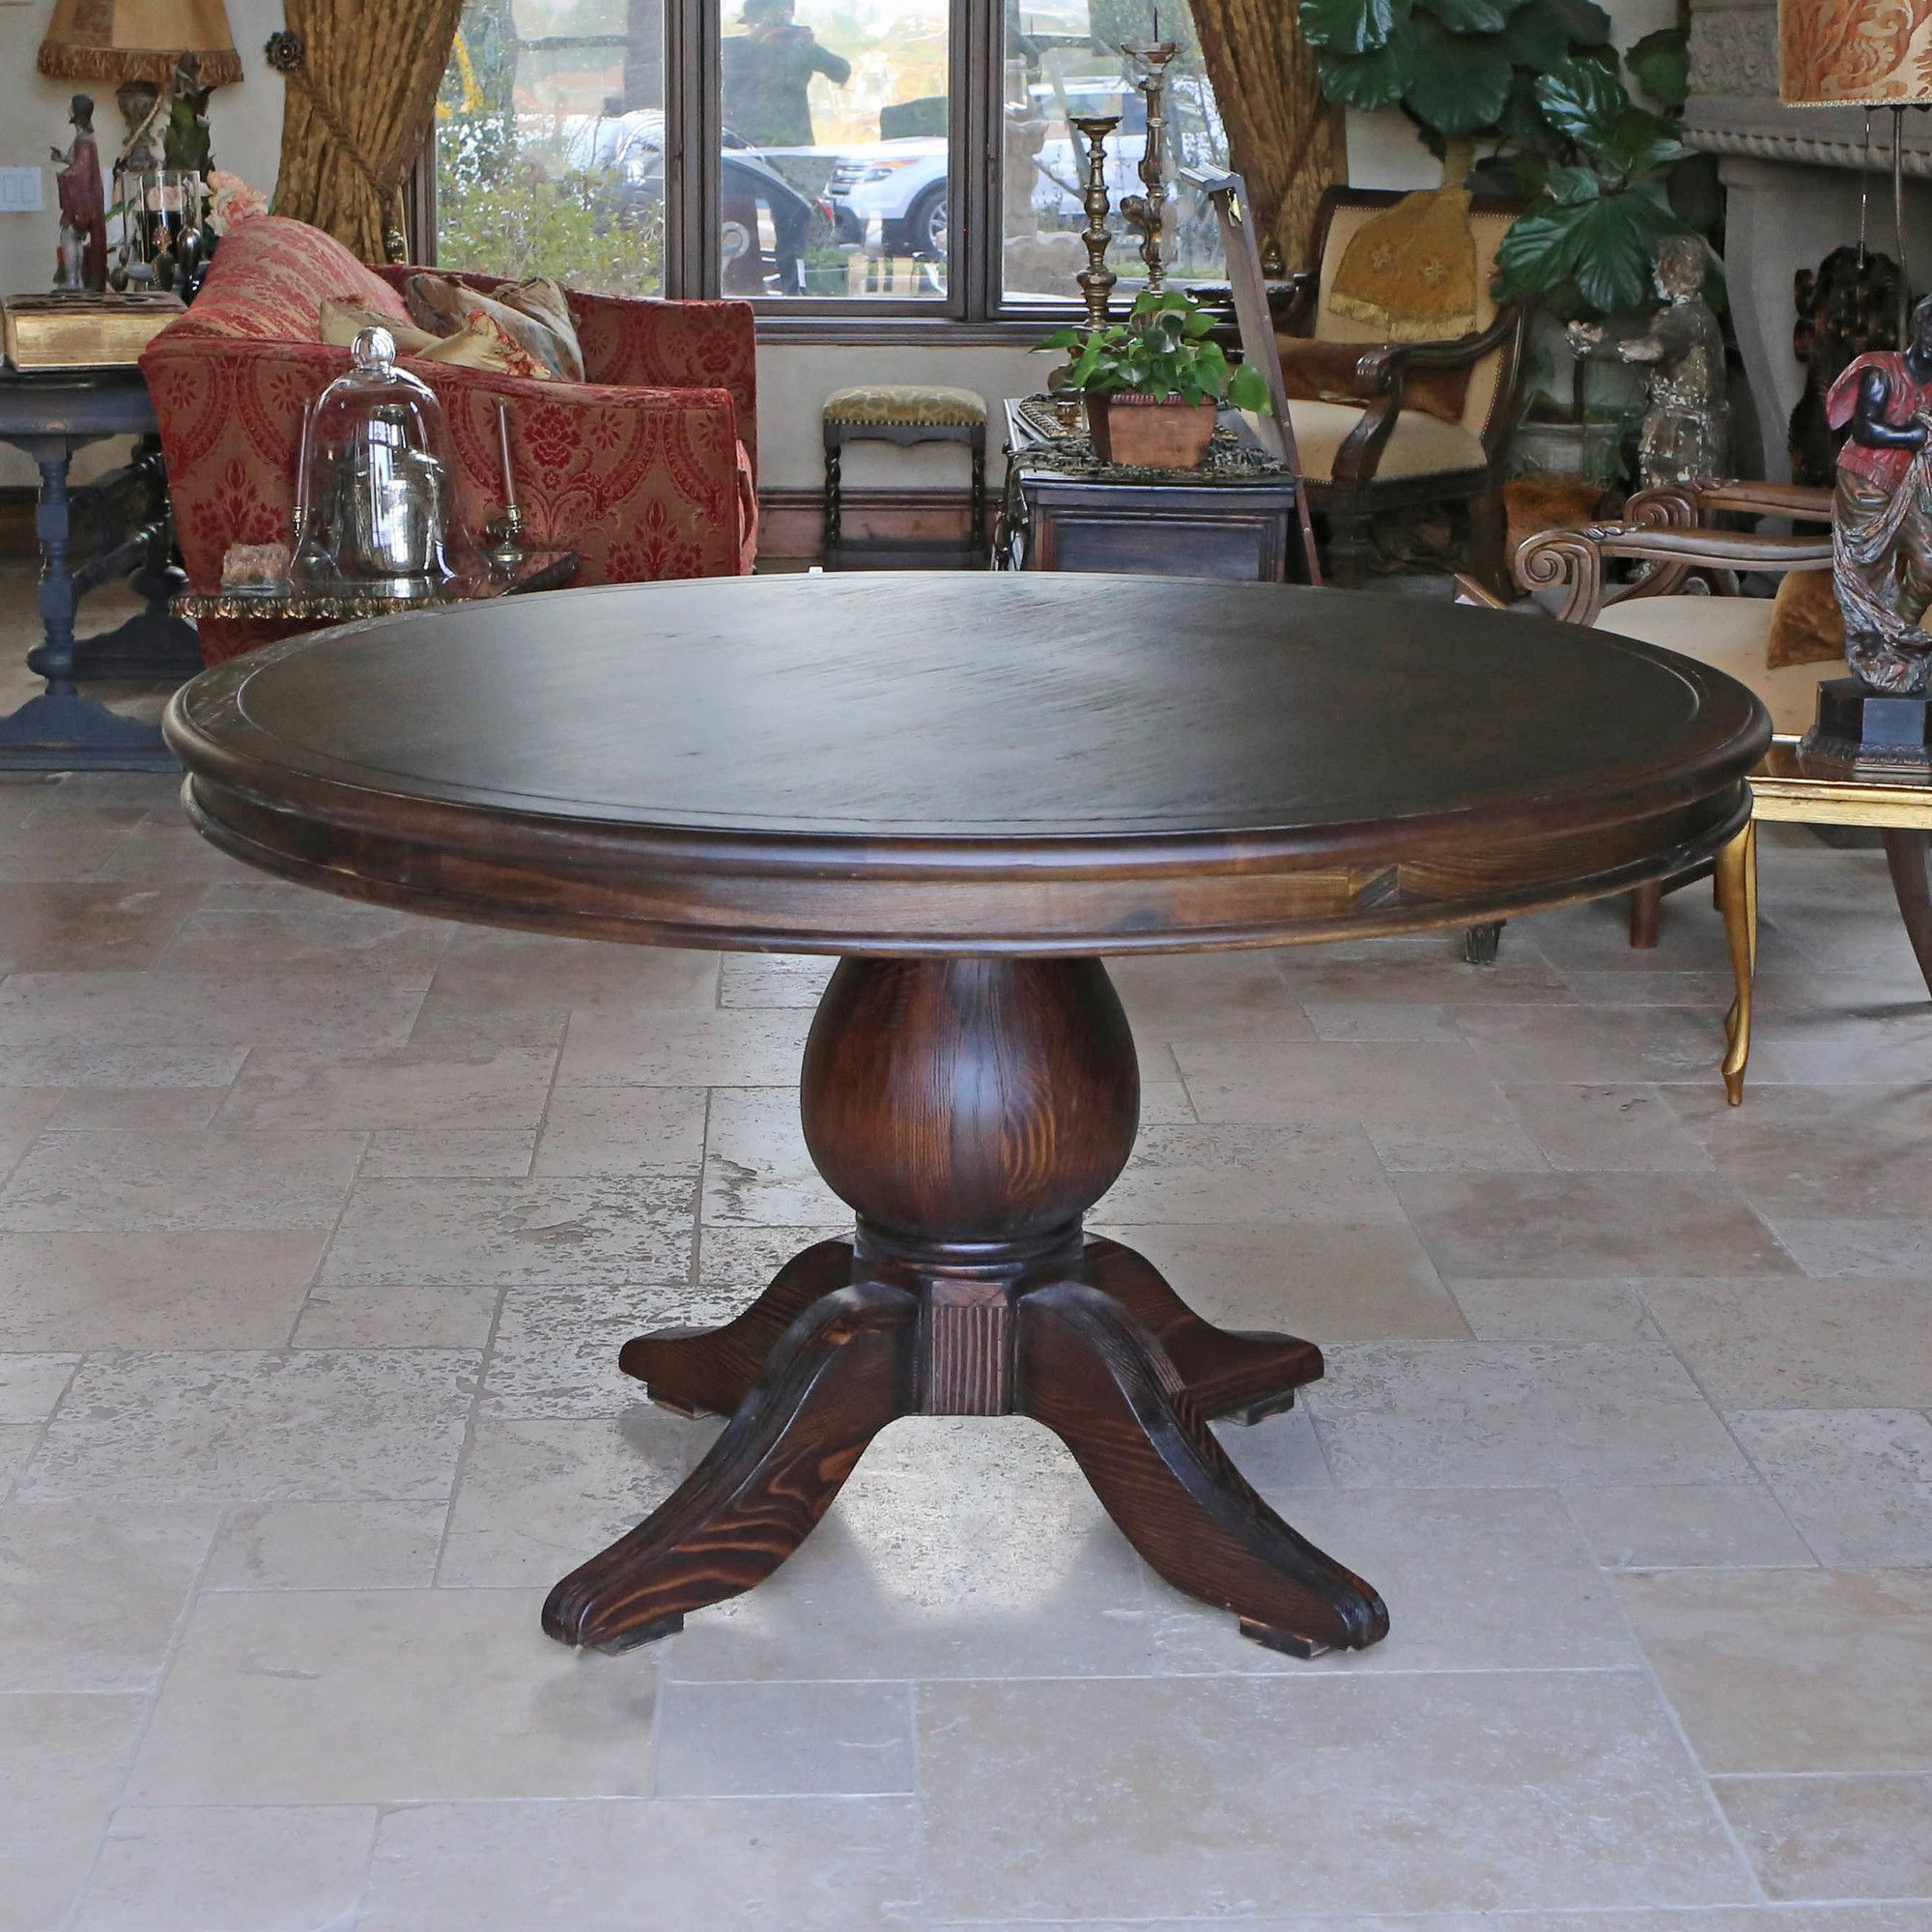 Draper Reclaimed Wood Dining Table Reclaimed Wood Round Dining Table